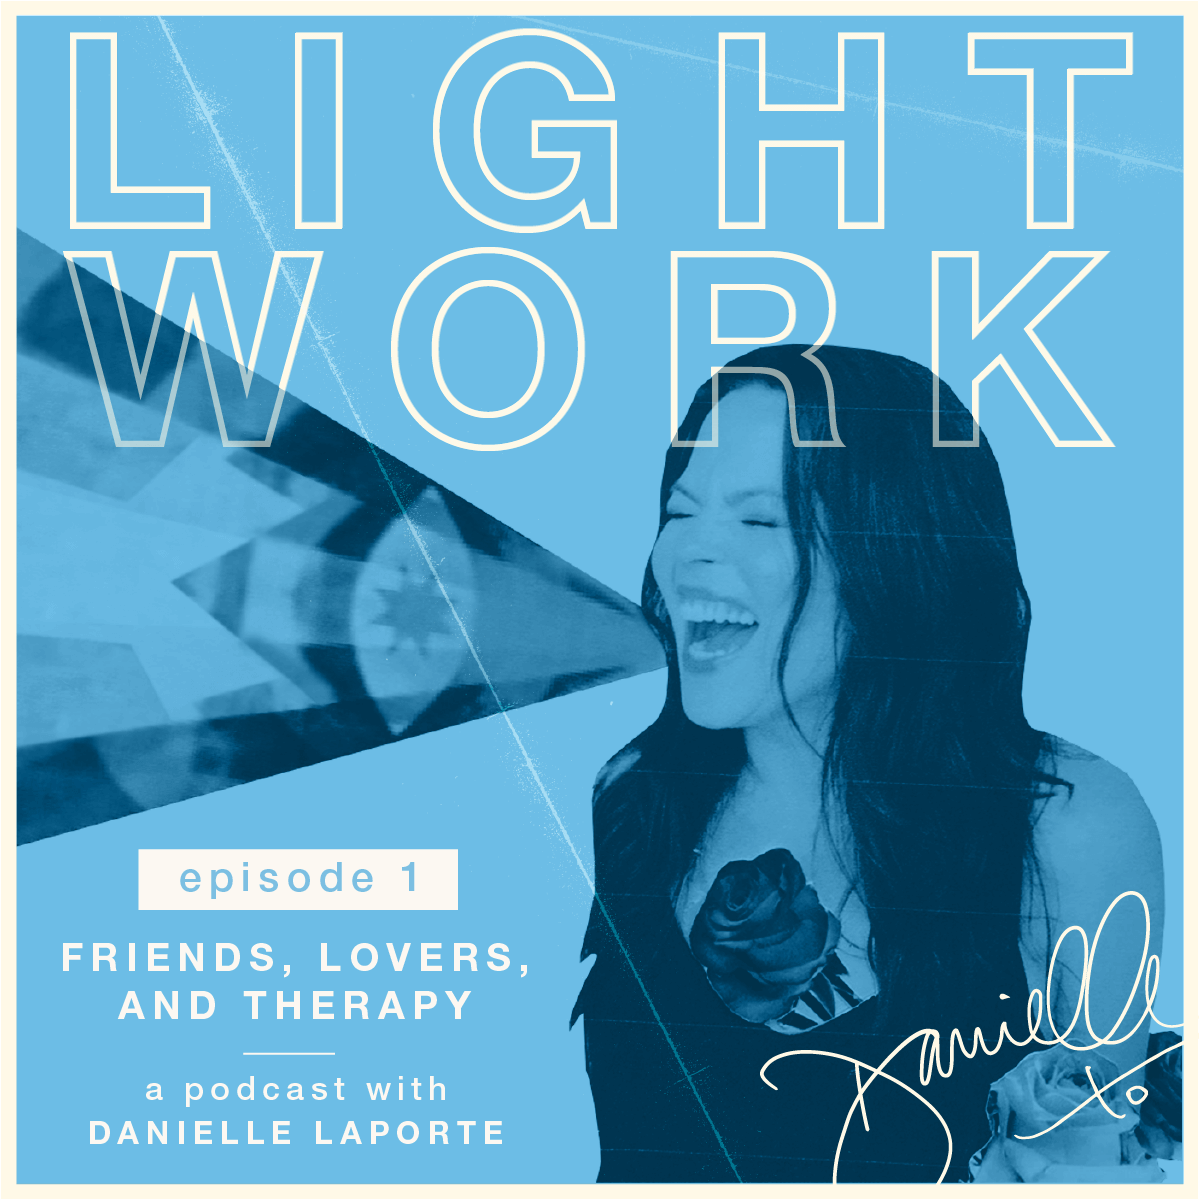 Danielle-LaPorte-LightWork-Friends-Lovers-Therapy.png